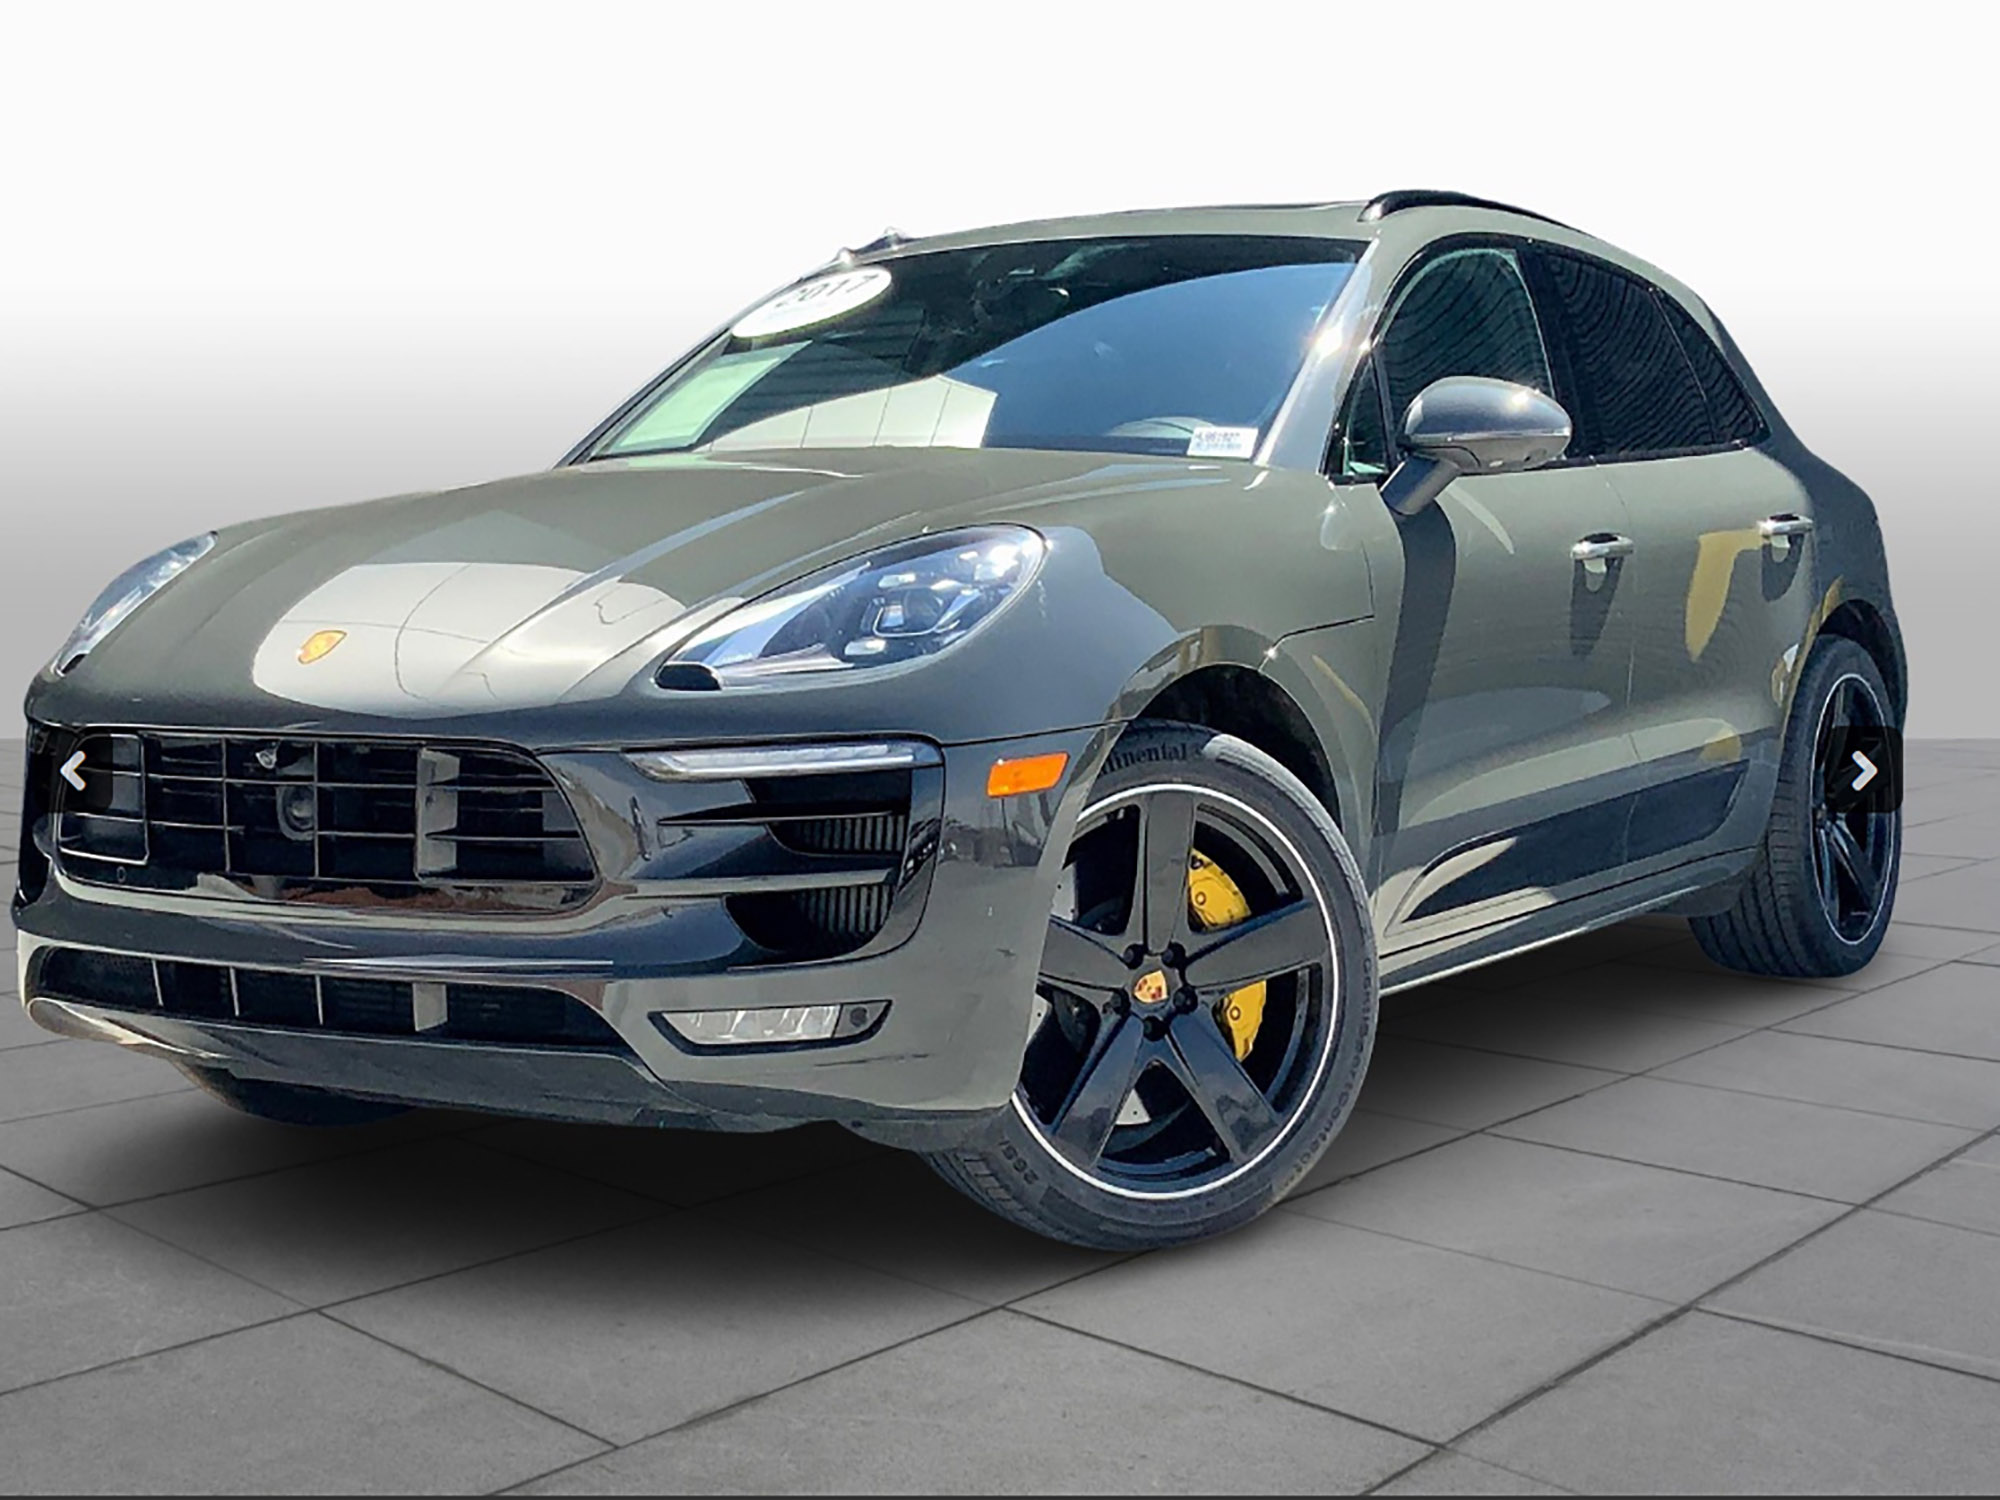 2017 Porsche Macan Turbo w/ Performance Package